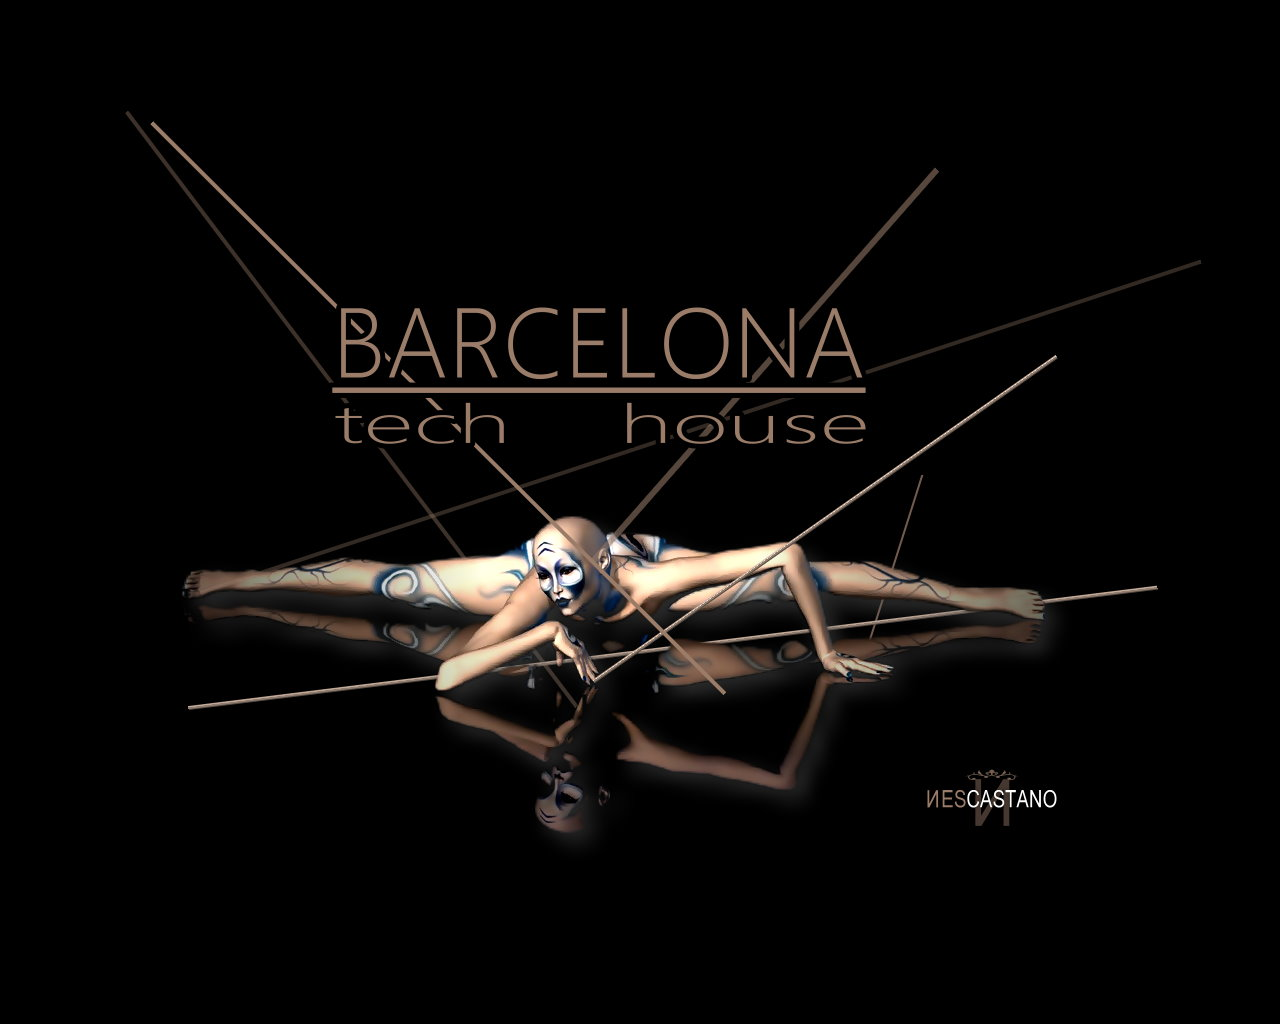 BARCELONA tech house